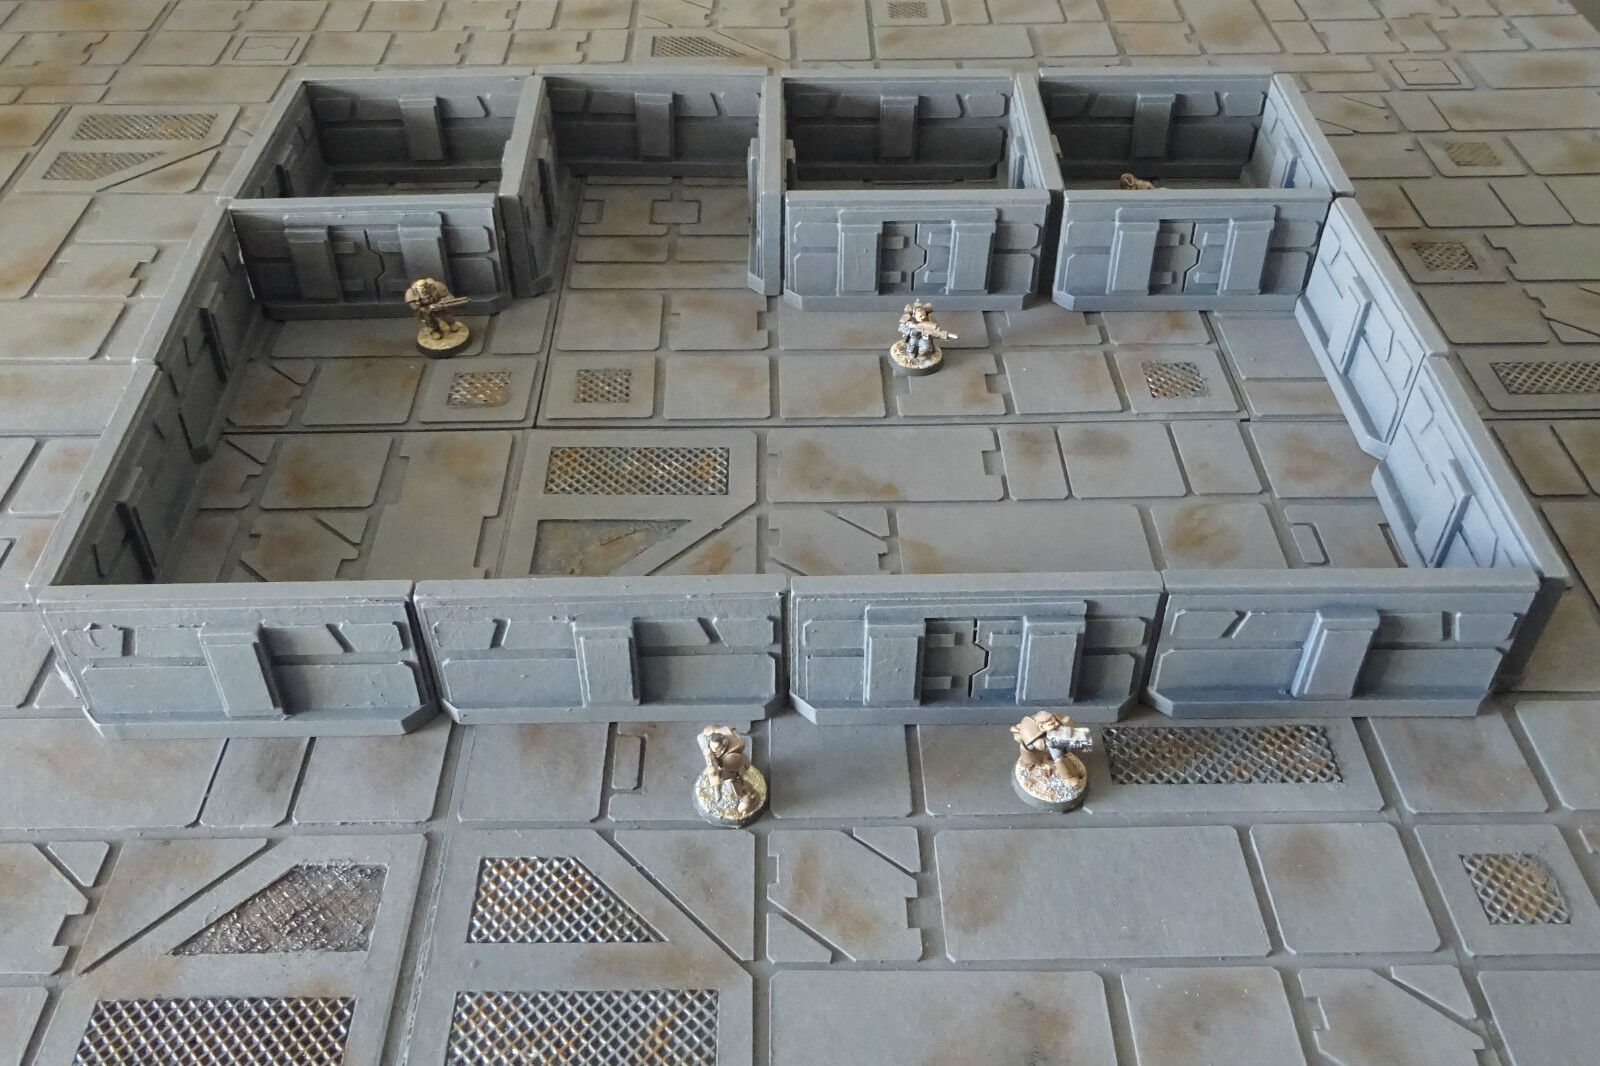 Wargame scenery - Sci Fi Walls set x 20 - Set 1 pieces Corridor